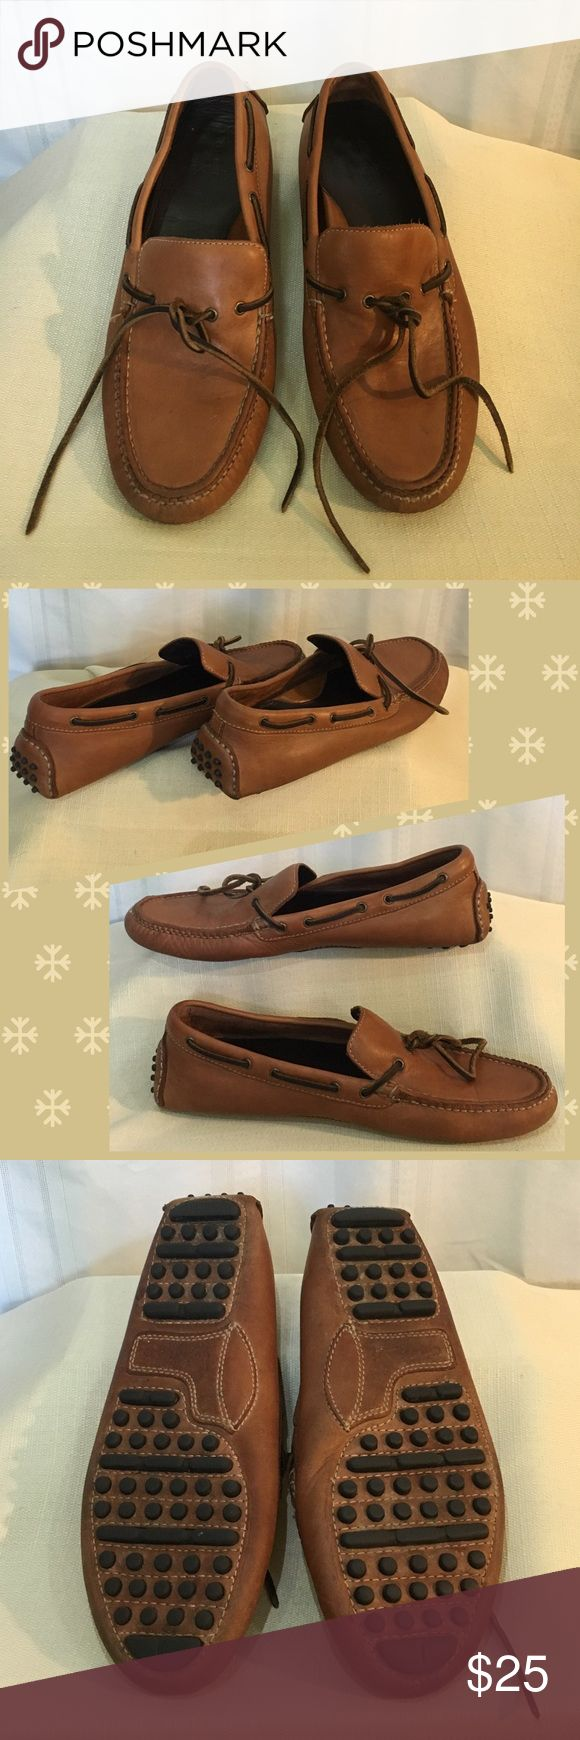 Cole Haan Gunnison Brown Driver Loafer (Nike Air) Super soft leather loafers with Nike Air insoles. Front leather tie and rubber soles. Shoes are broken in, but leather and soles are in good condition. Cole Haan Shoes Loafers & Slip-Ons